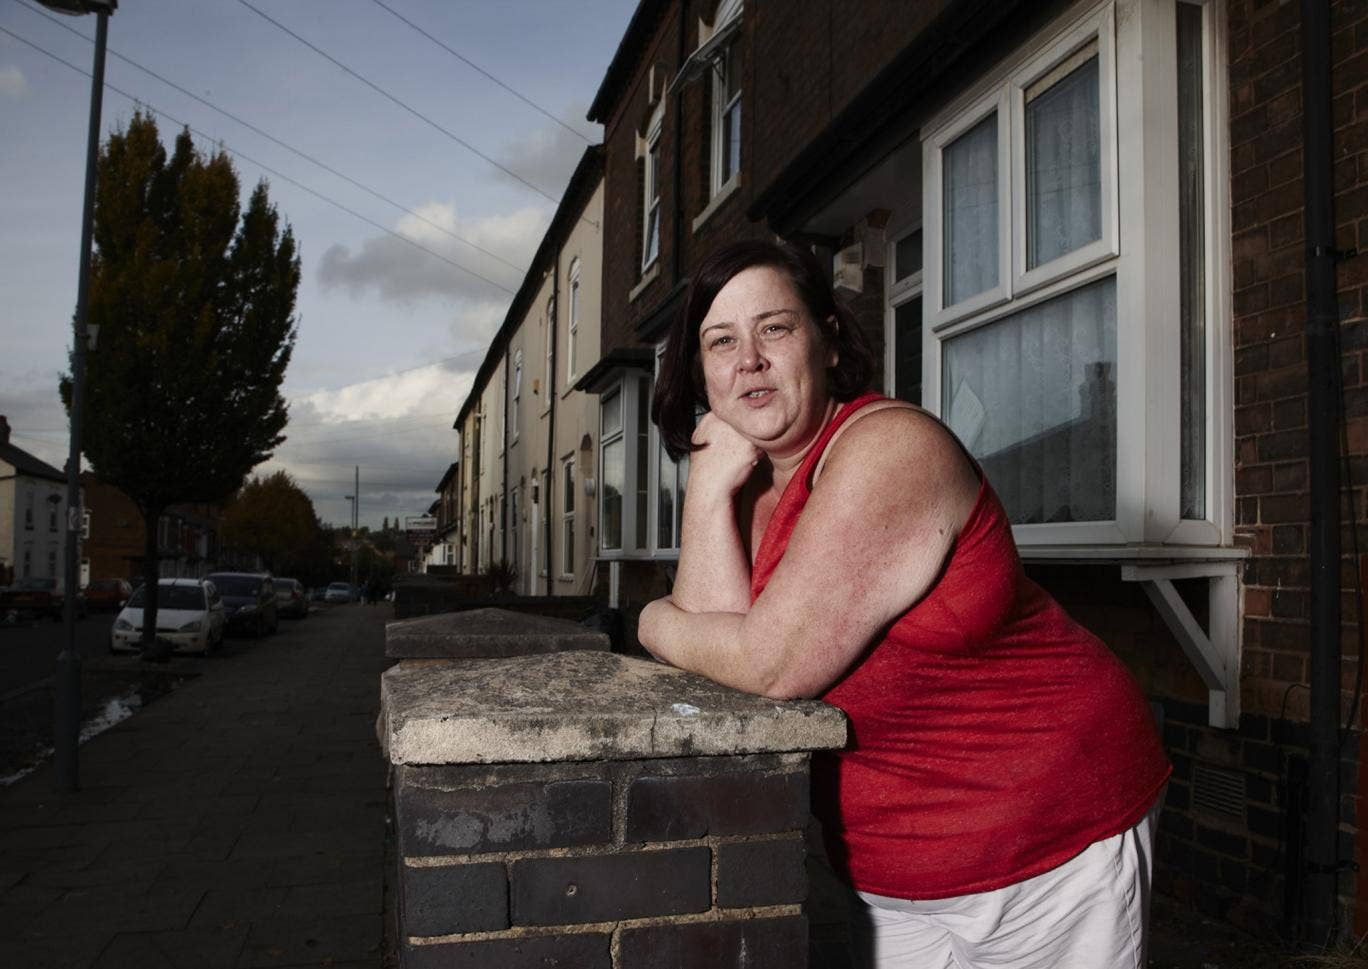 Residents of James Turner Street such as White Dee will have a chance to share their experiences of benefits on a Channel 4 spin-off show